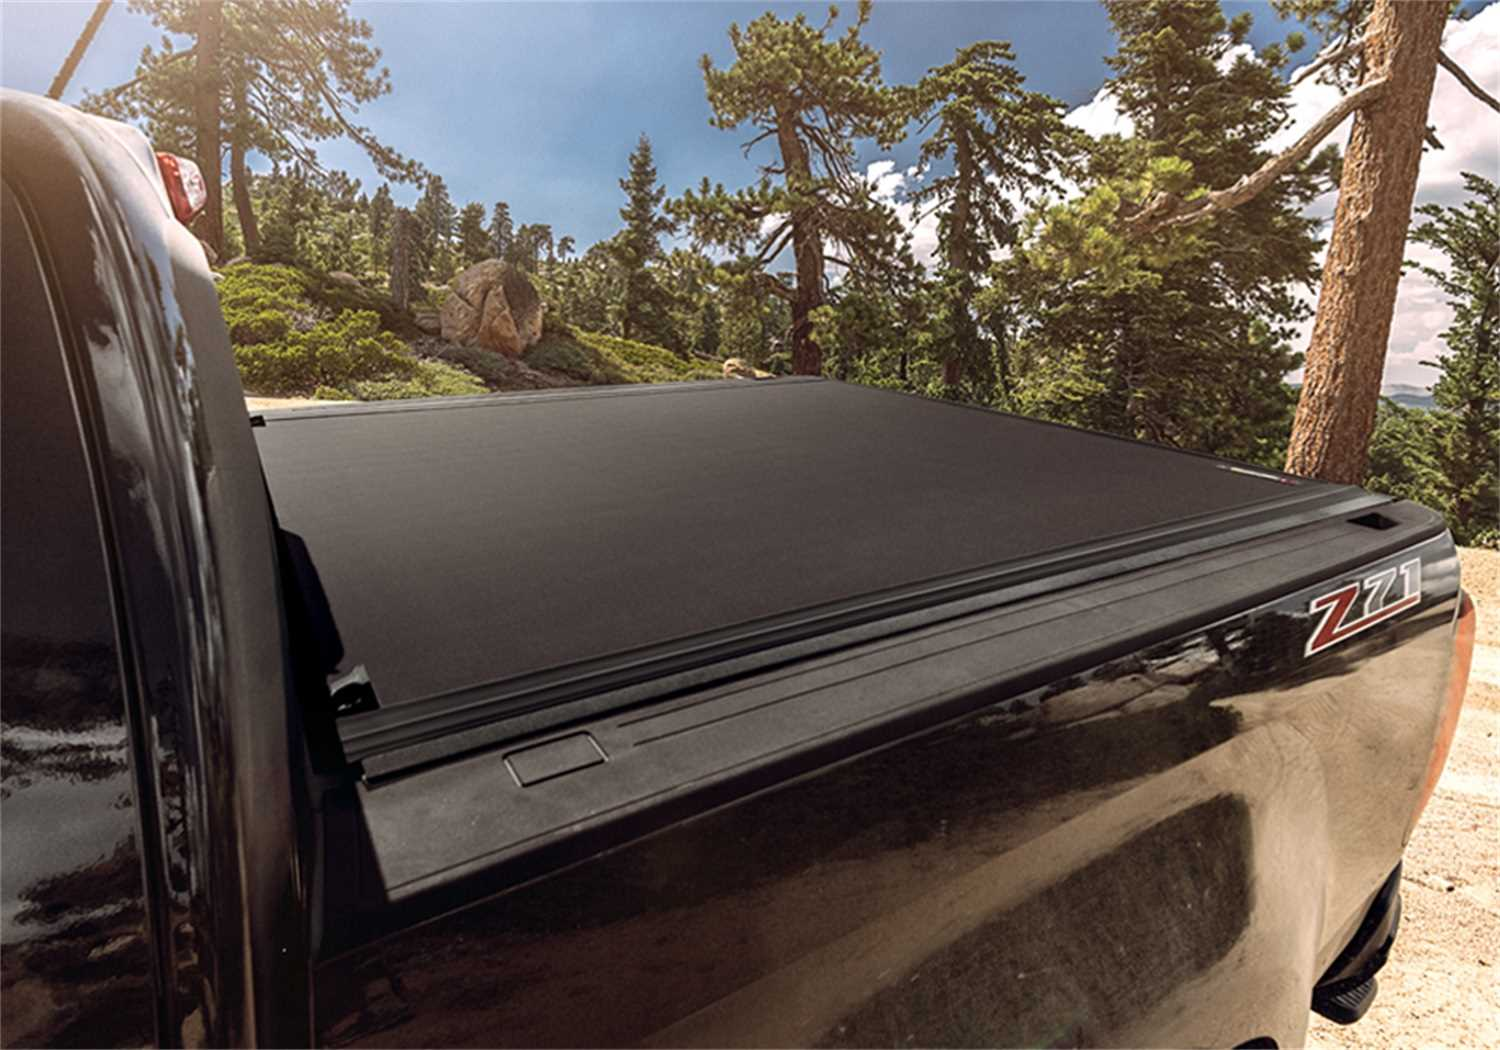 79130 Bak Industries Revolver X4 Hard Rolling Truck Bed Cover